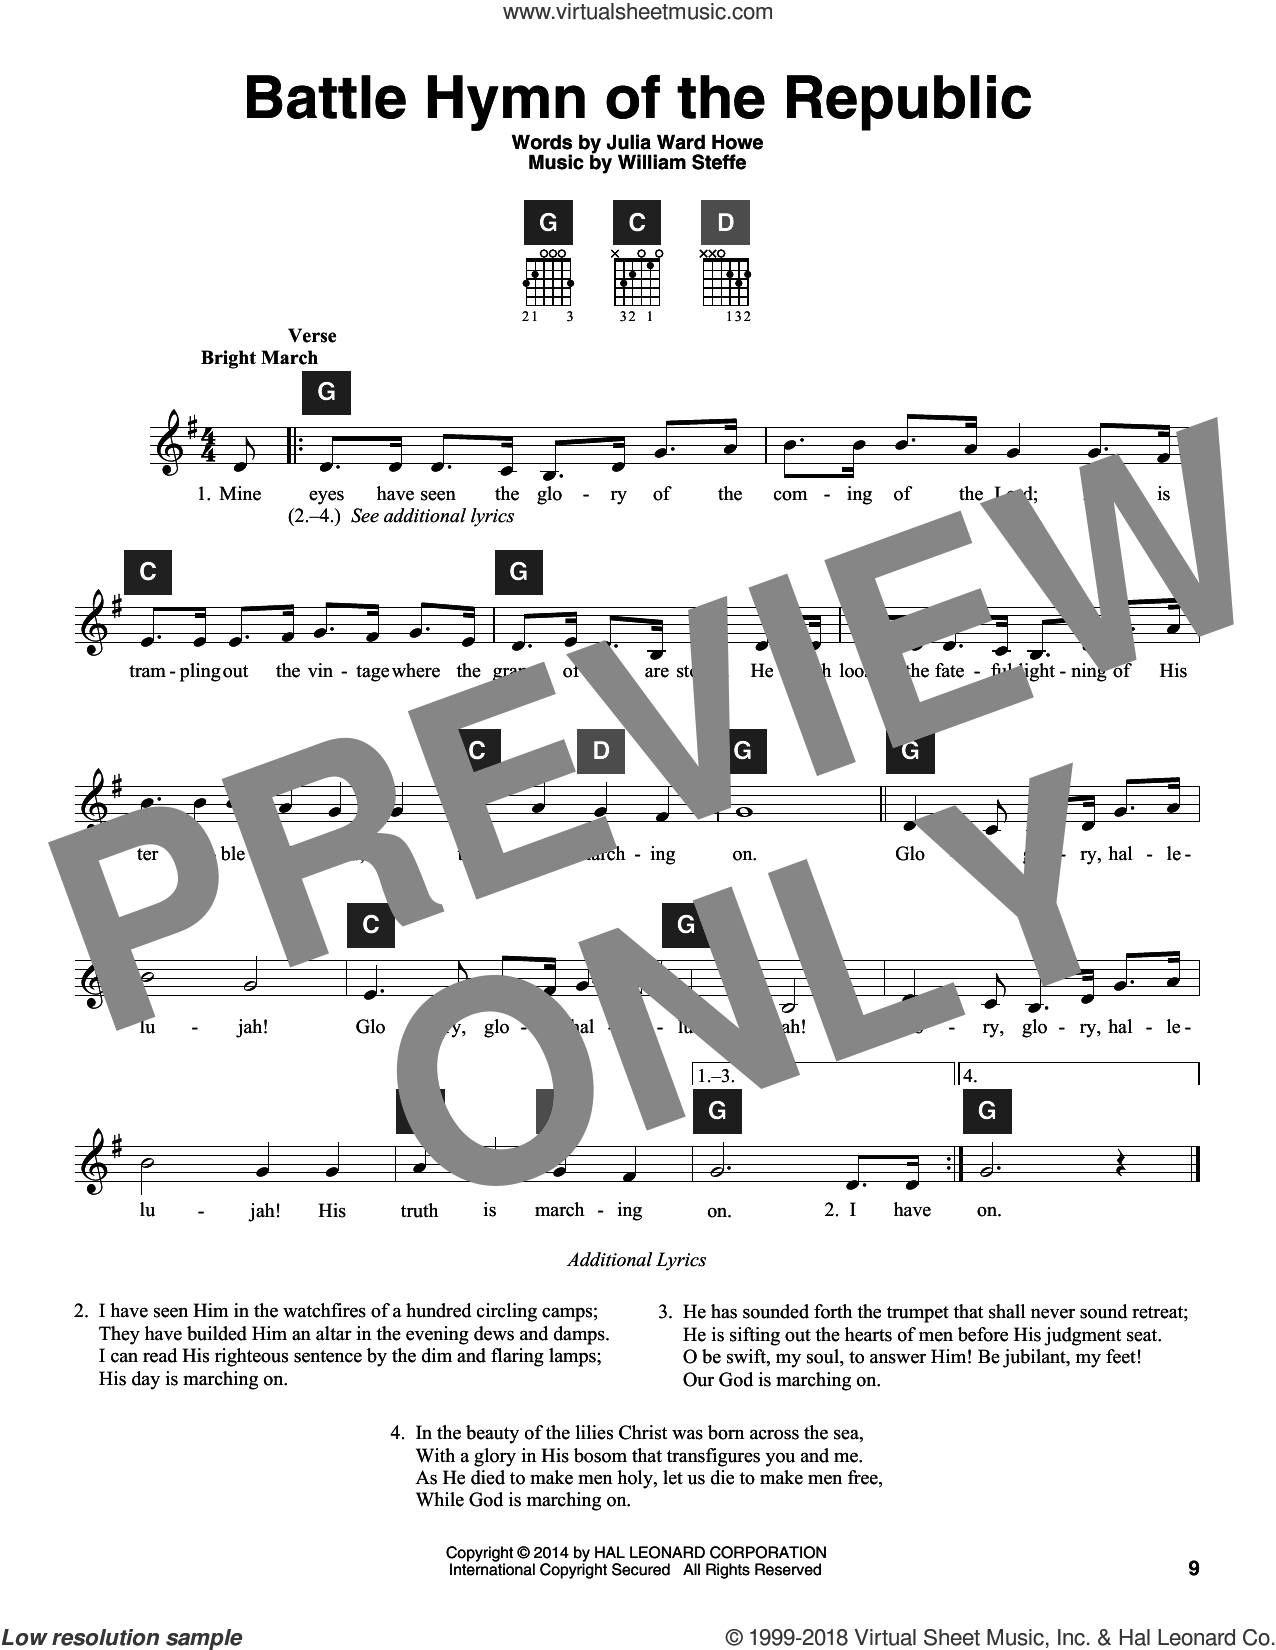 Battle Hymn Of The Republic sheet music for guitar solo (ChordBuddy system) by Julia Ward Howe, Travis Perry and William Steffe, intermediate guitar (ChordBuddy system). Score Image Preview.